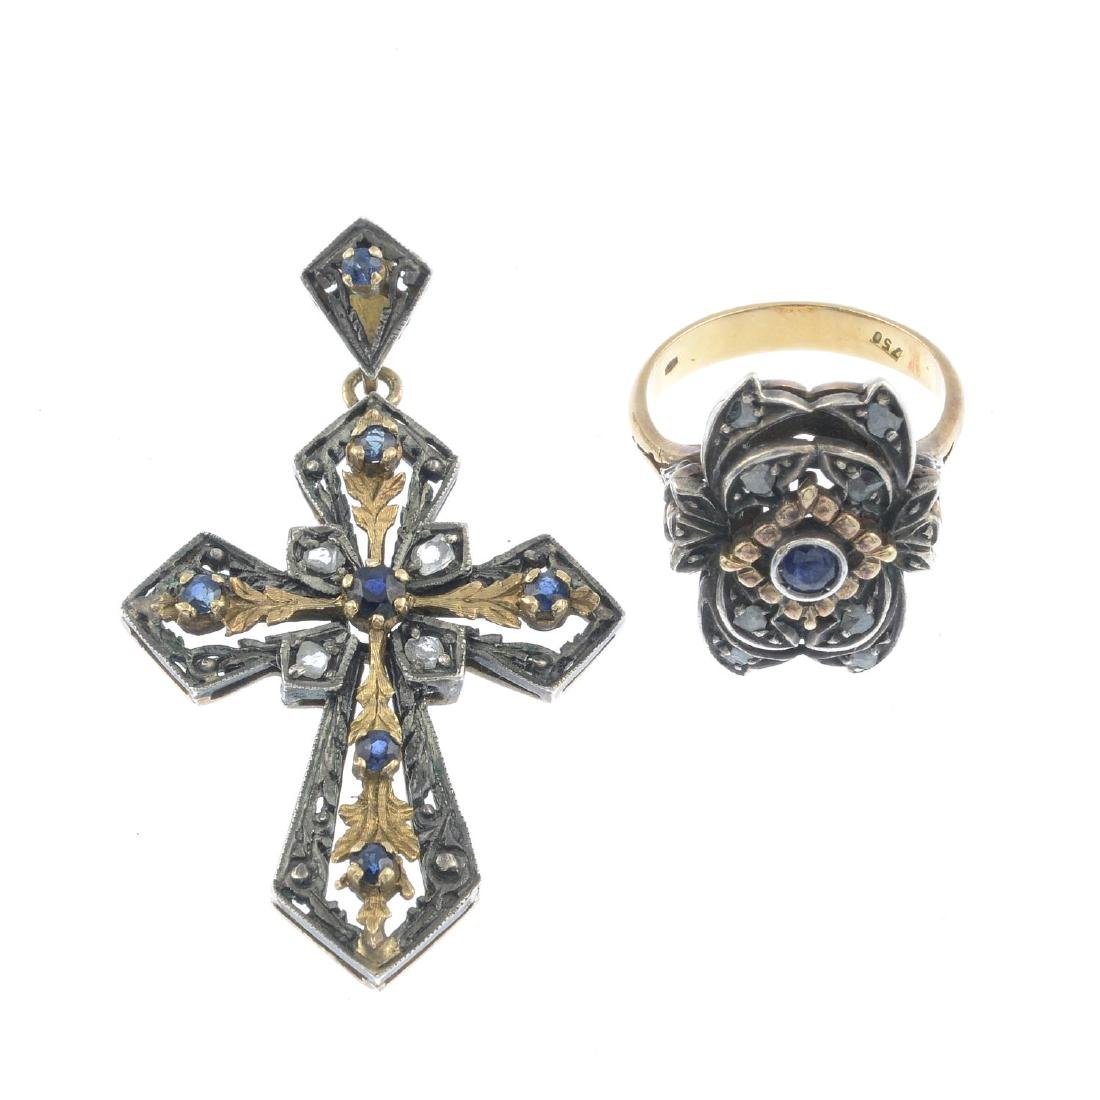 A sapphire and diamond dress ring and pendant. Each of